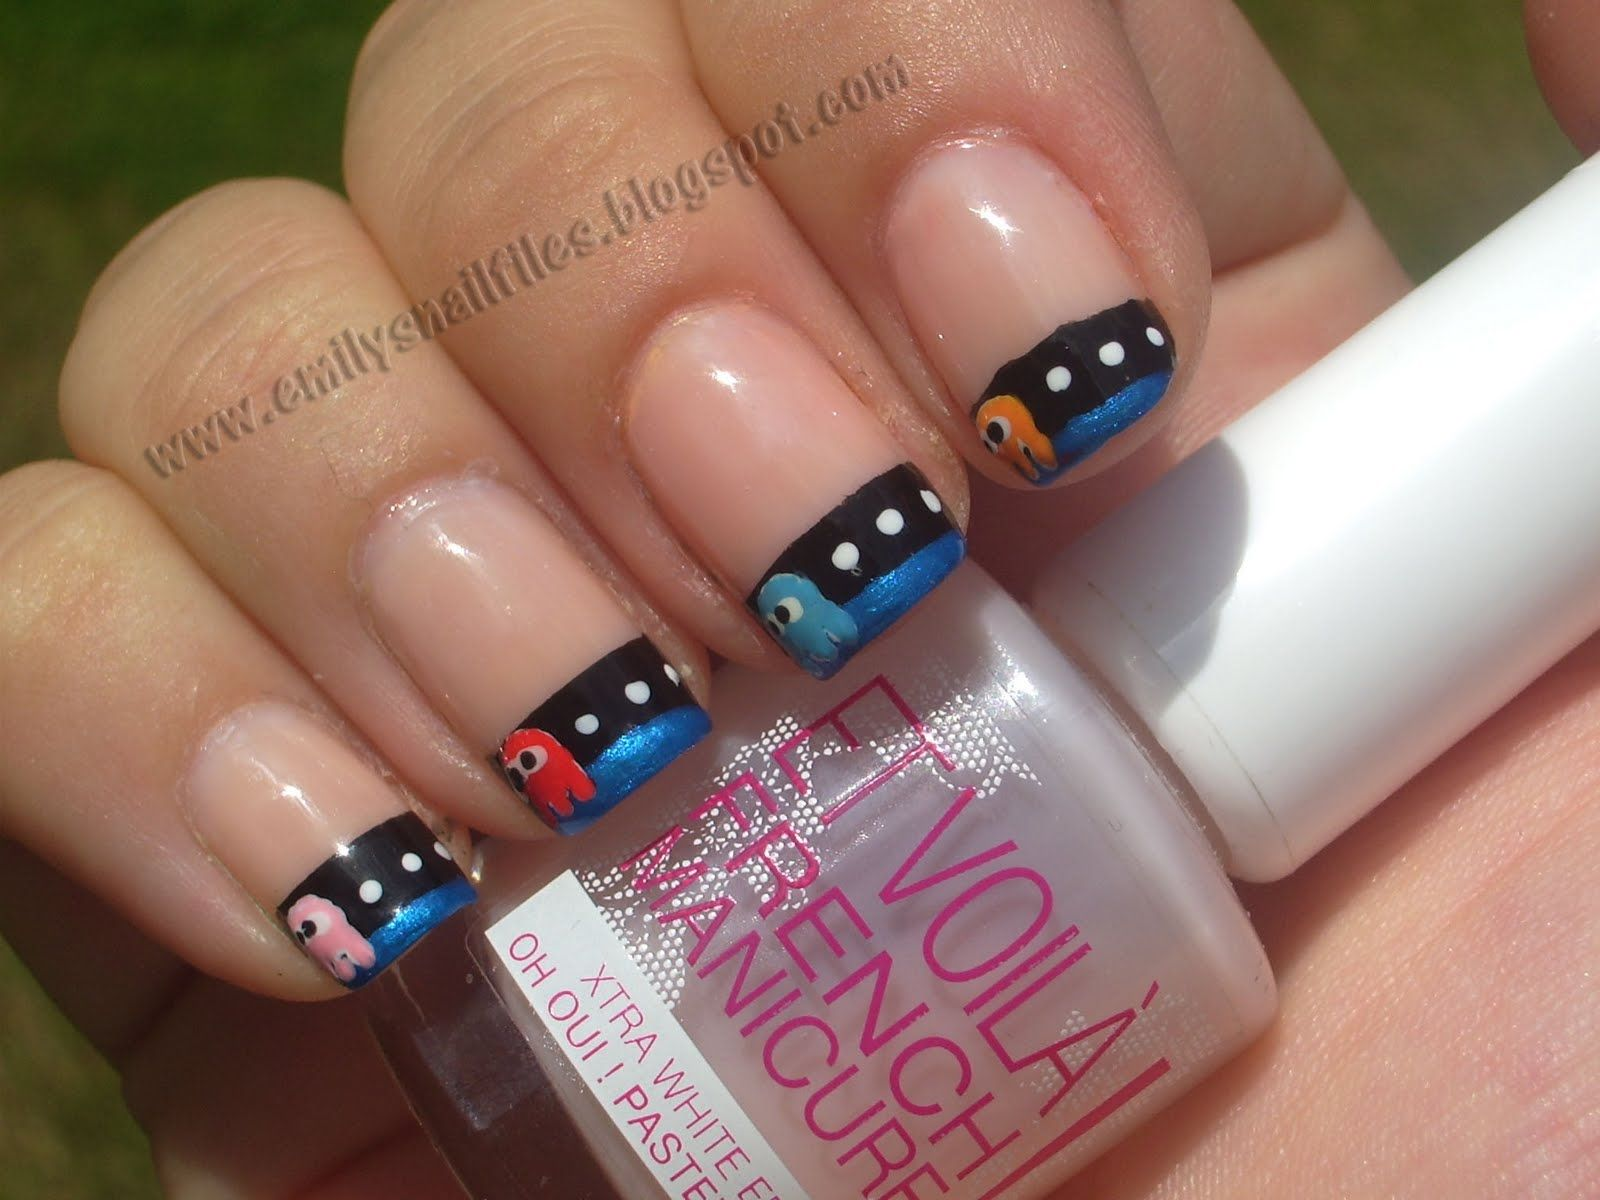 PacMan French Manicure: Pac Man is always cool, French mani is less overwhelming than all over designs.